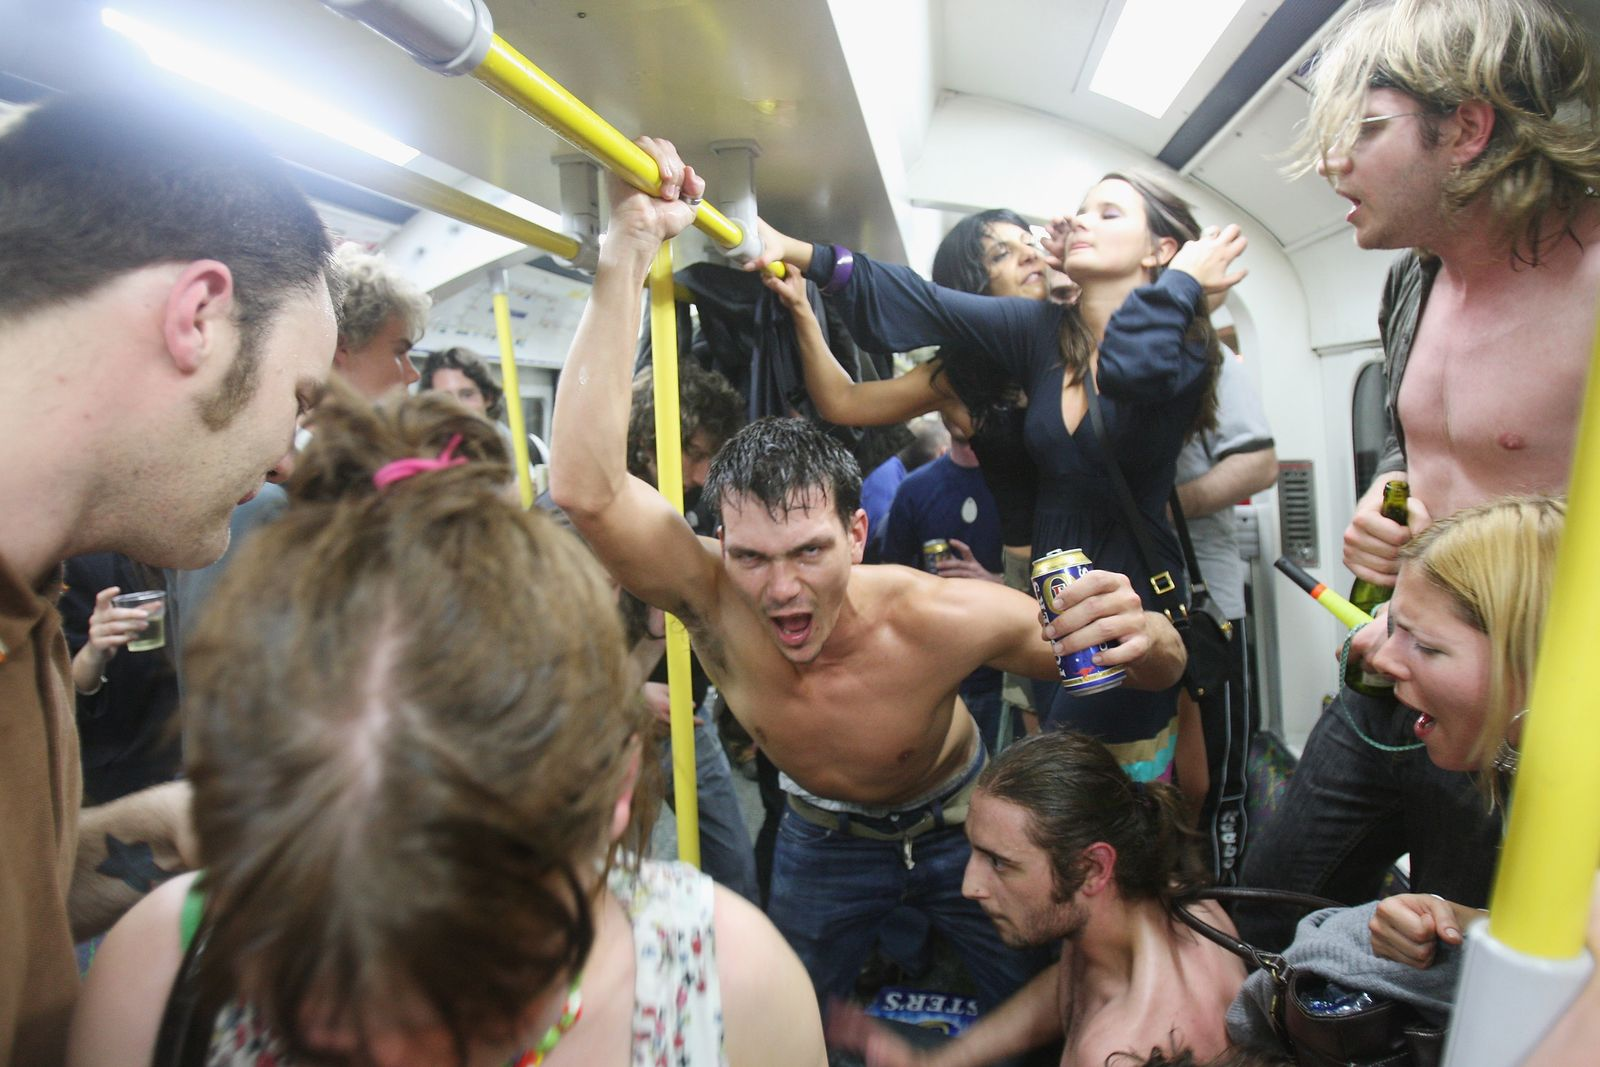 London/ Underground/ Party